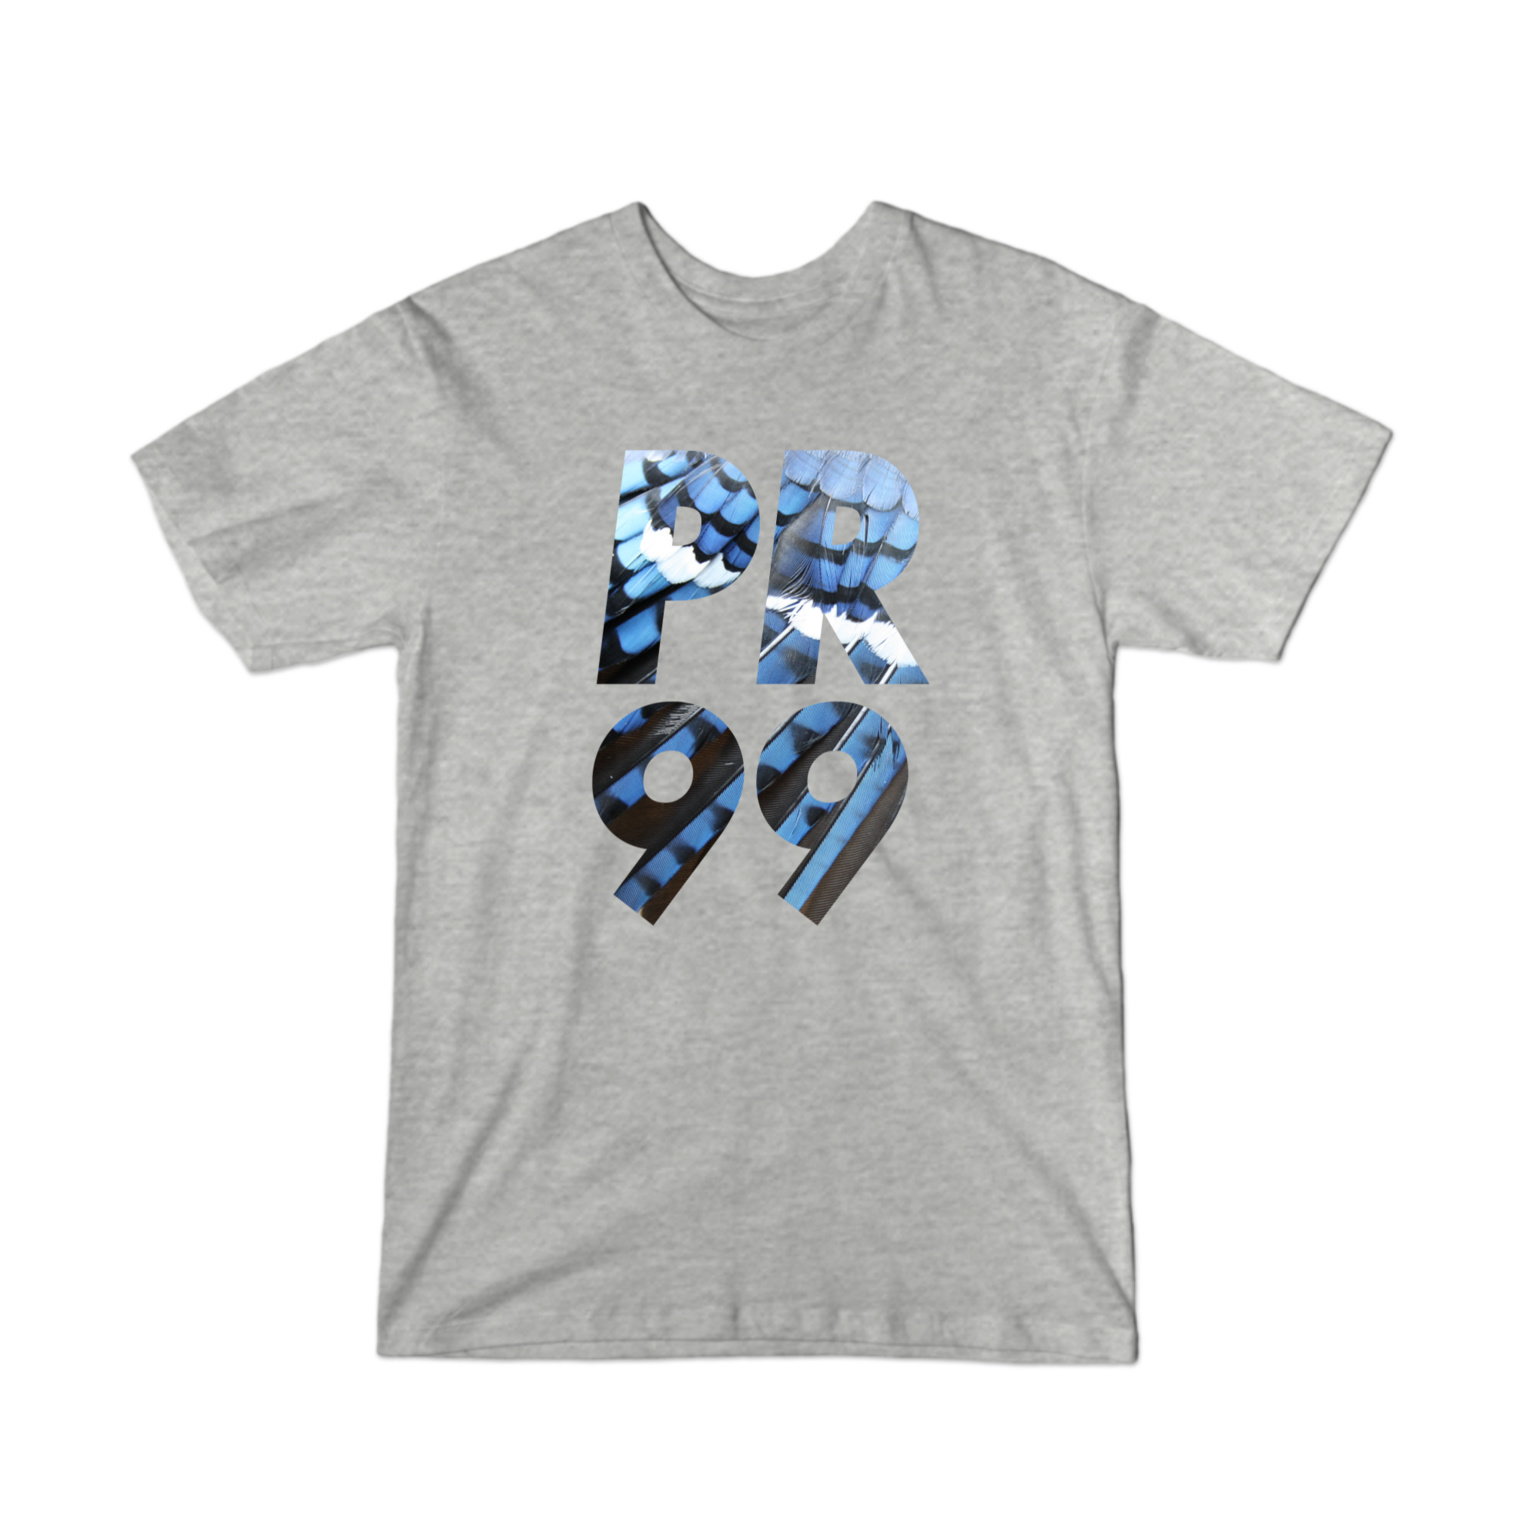 PR99 Hopkins T-Shirt